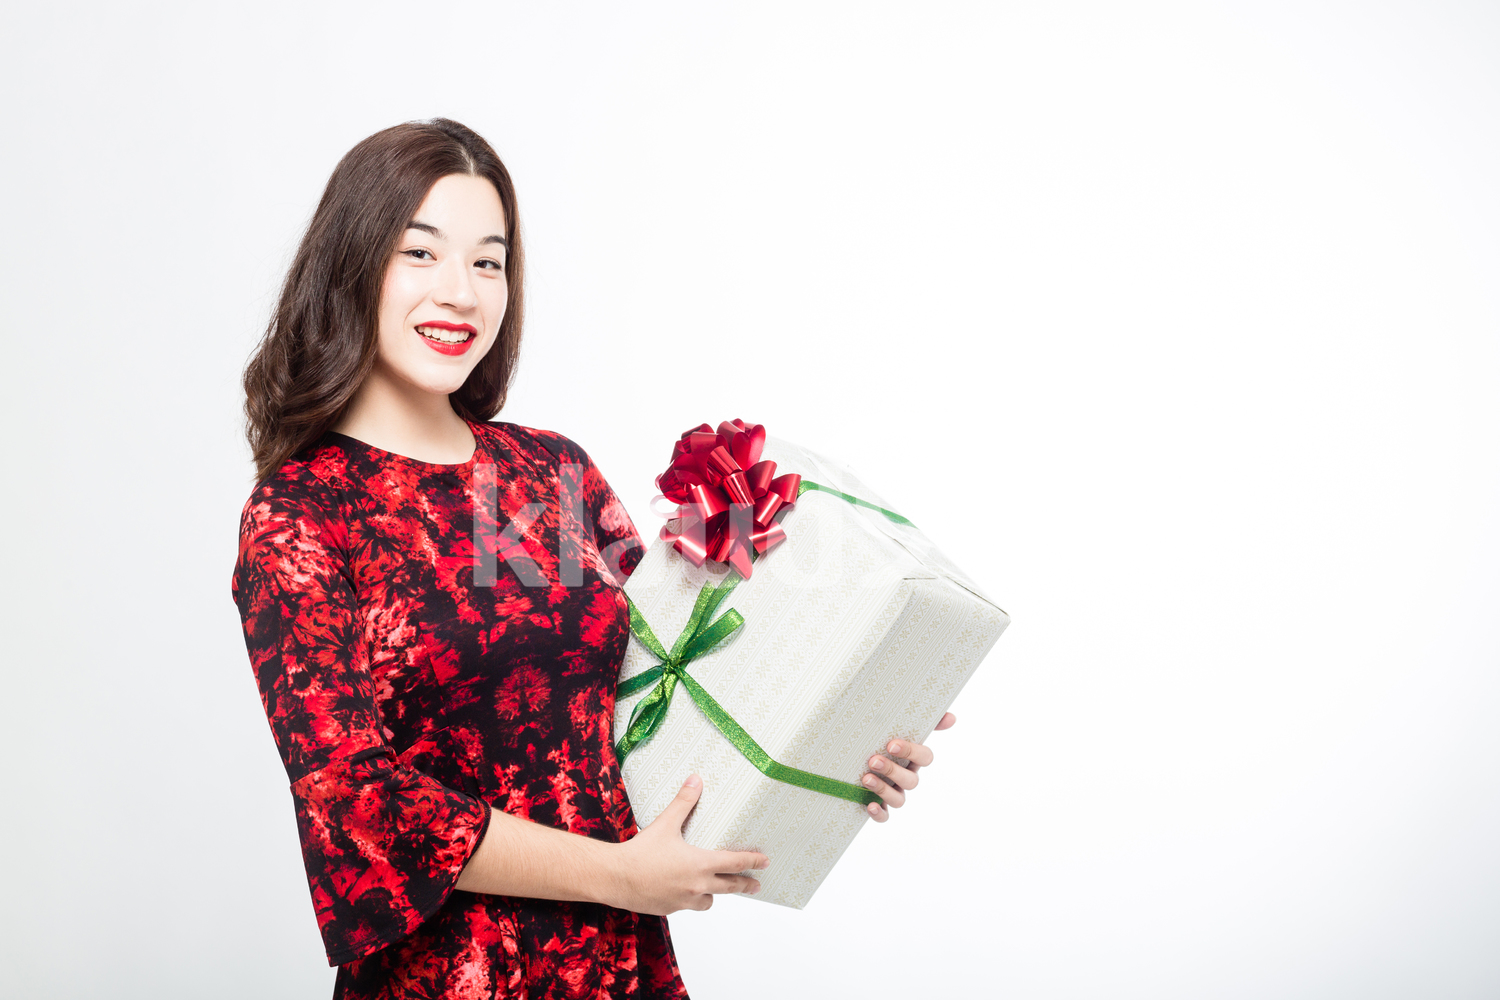 Pretty Woman with a Big Gift Box